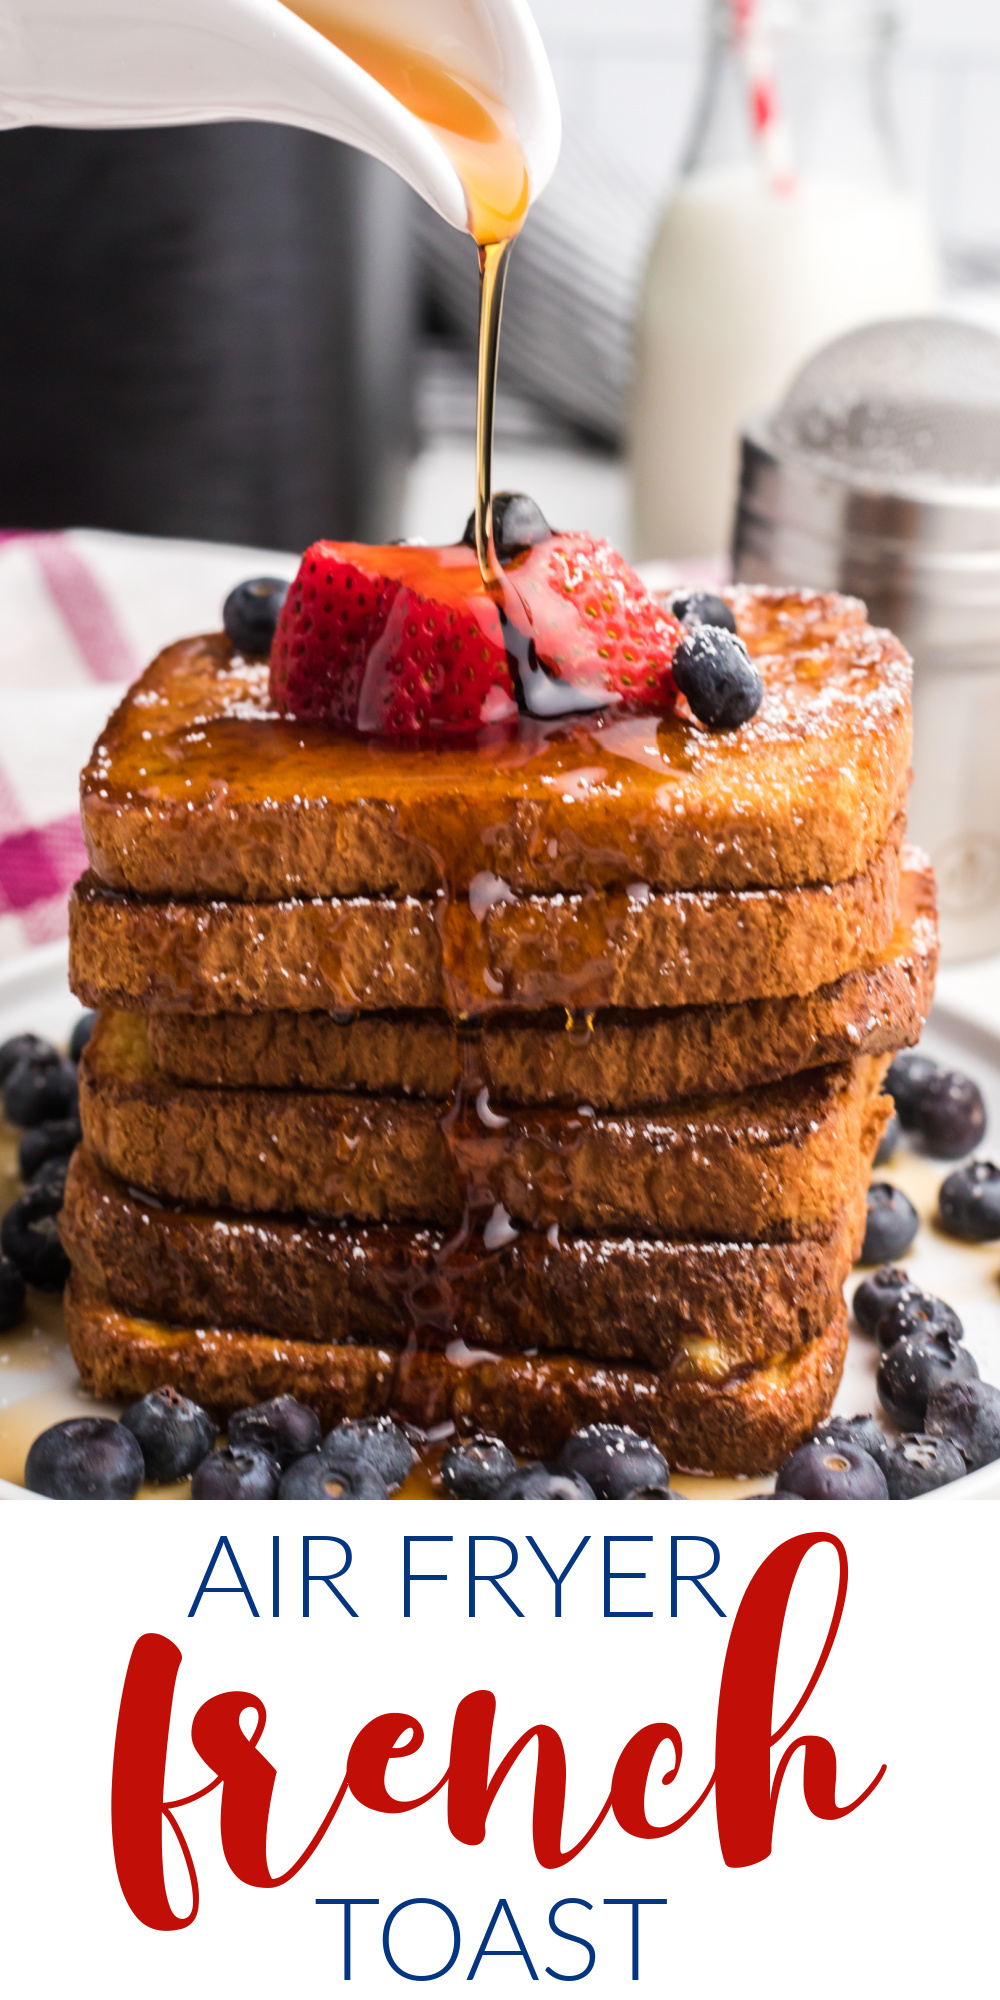 This Air Fryer French Toast recipe is one of my favorite easy recipes to make with the air fryer. You'll love how quick and hands-off this delicious breakfast dish is! Made with bread, milk, egg, sugar, and cinnamon. It's an easy air fryer breakfast recipe that everyone loves.